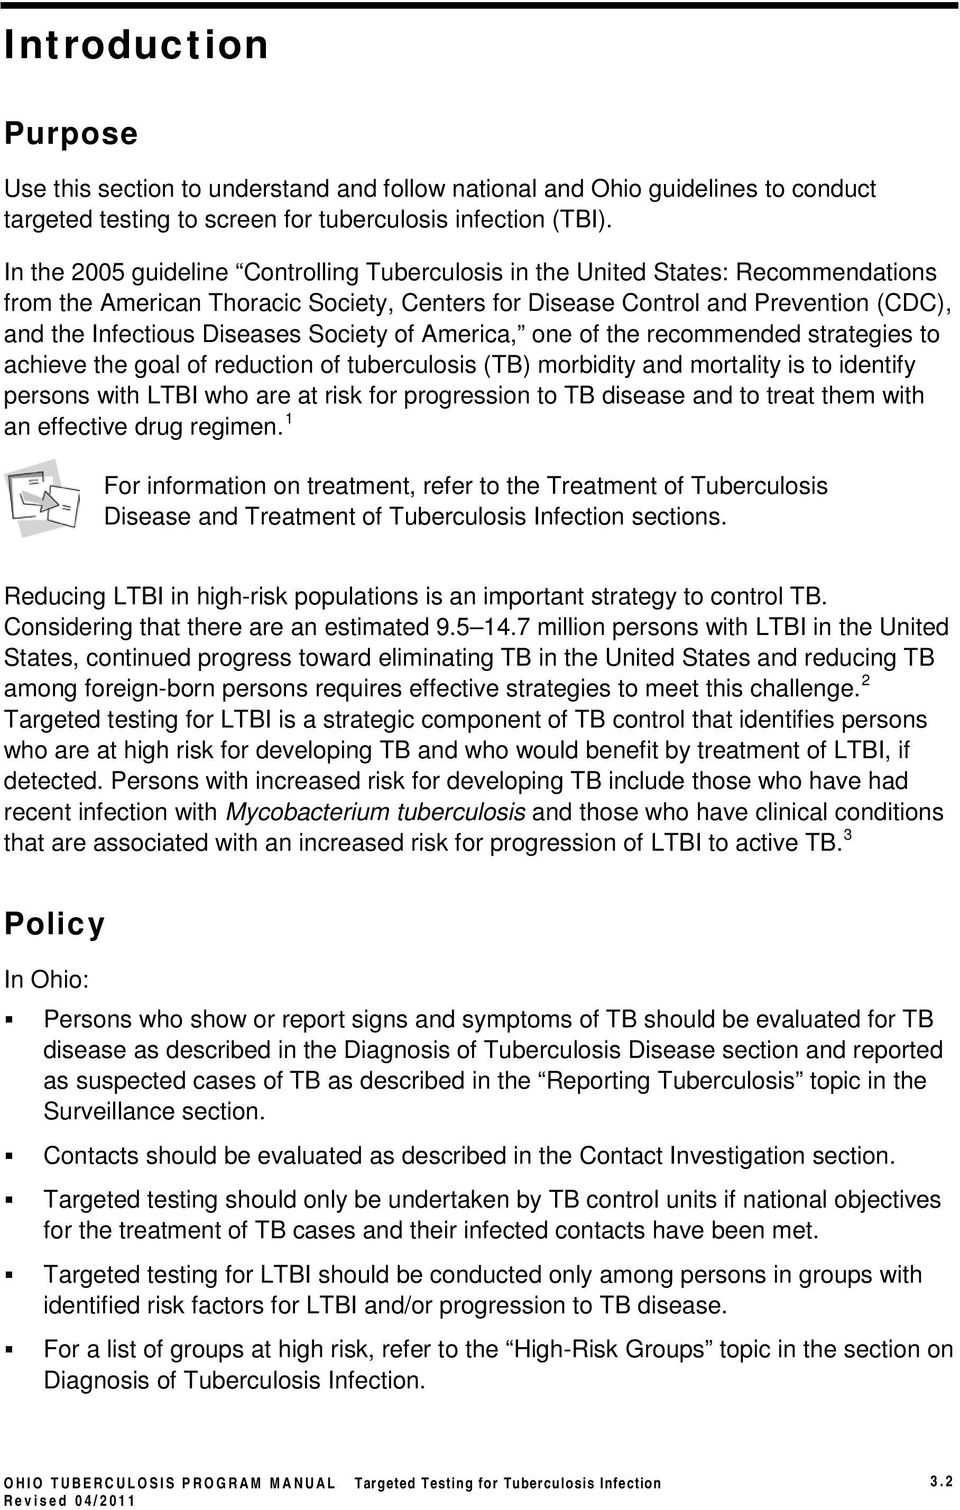 Society of America, one of the recommended strategies to achieve the goal of reduction of tuberculosis (TB) morbidity and mortality is to identify persons with LTBI who are at risk for progression to